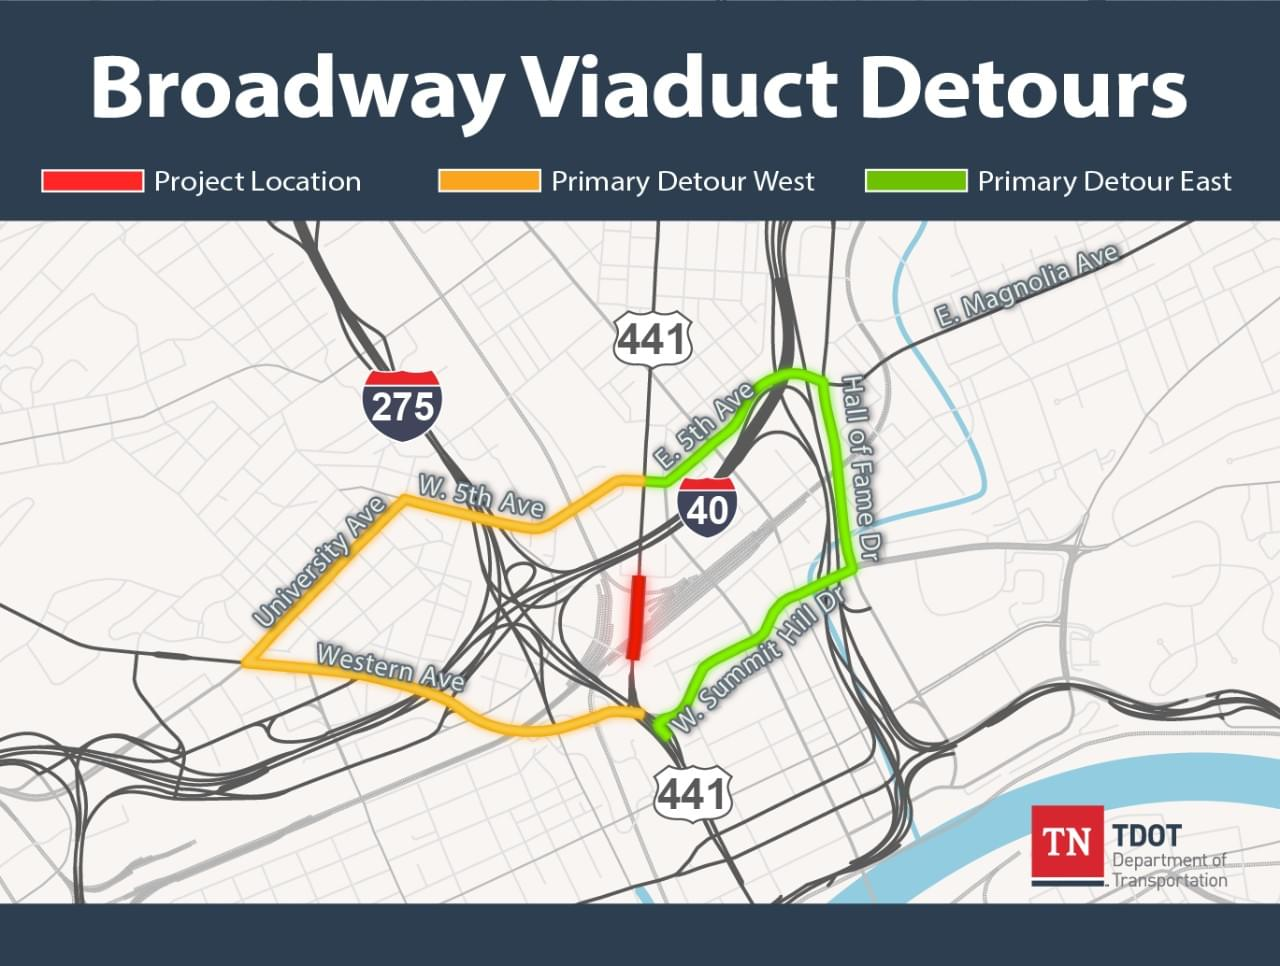 Construction Closing Broadway Viaduct for Three Years